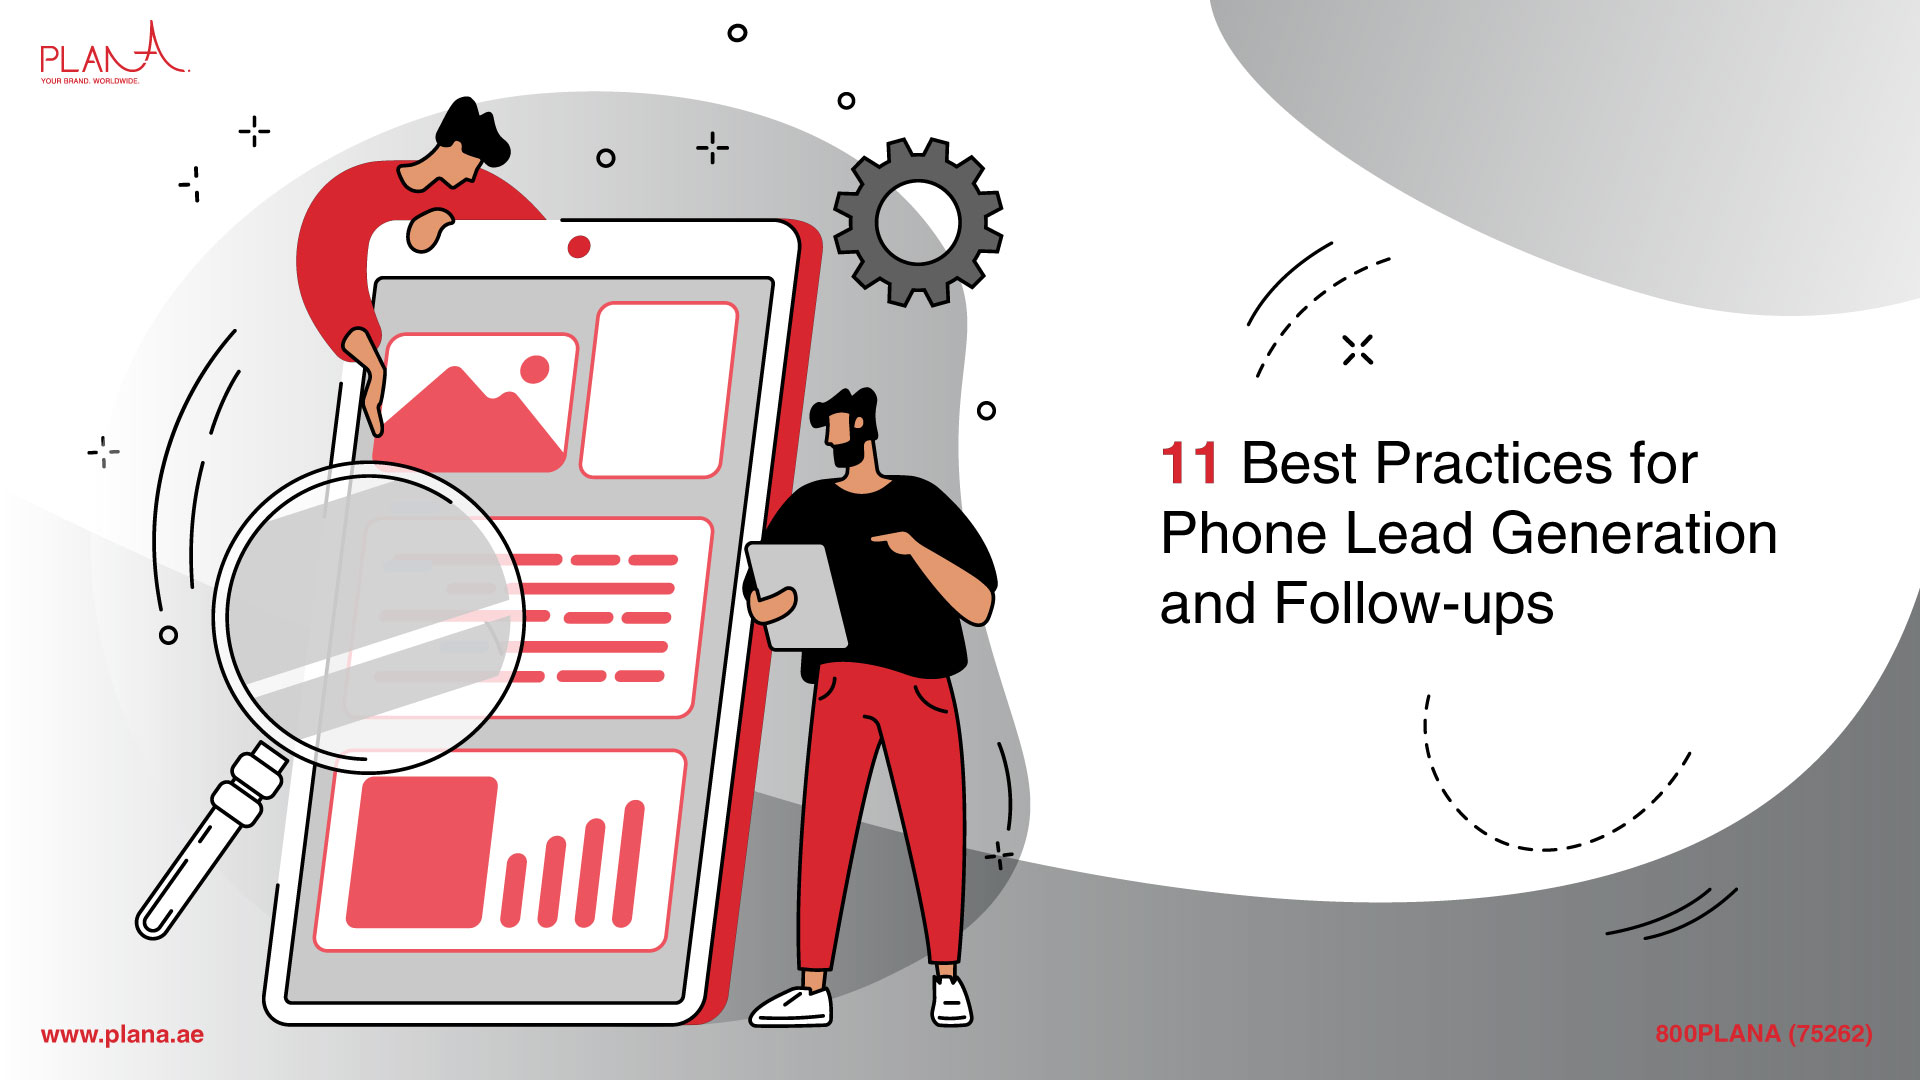 11 Best Practices for Phone Lead Generation and Follow ups